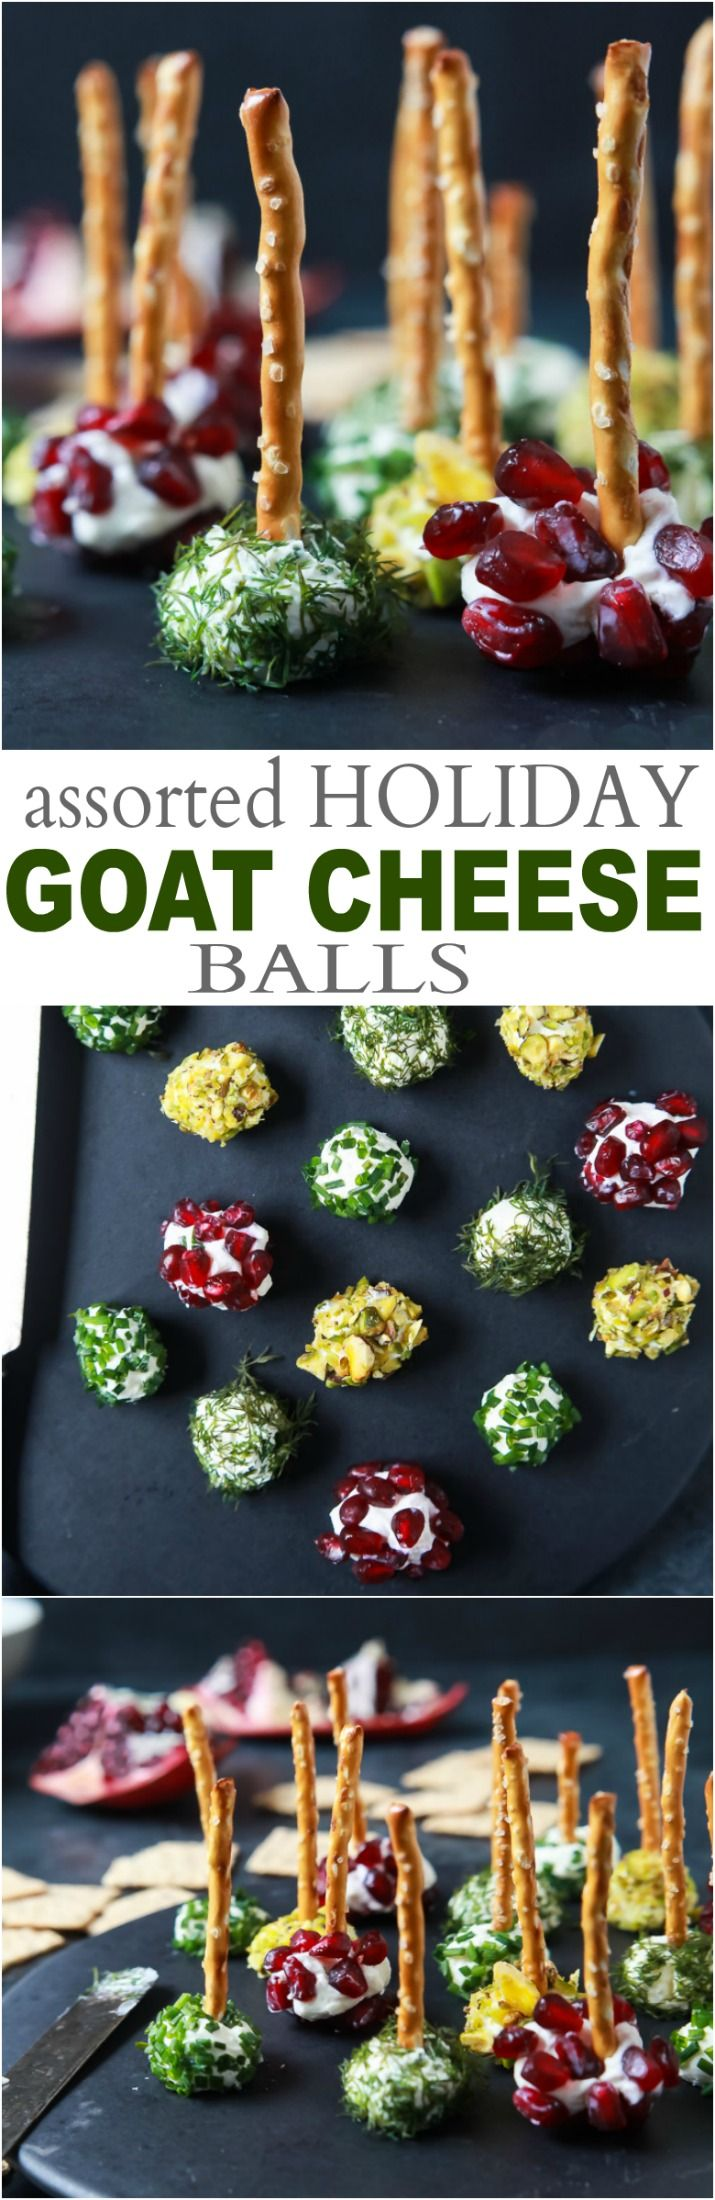 Everyone loves a good cheese ball, but your guest will fall in love with these Assorted Holiday Goat Cheese Balls coated with a combination of fresh dill, chives, pistachios, and pomegranate seeds! | joyfulhealthyeats.com #appetizer #ad #holiday